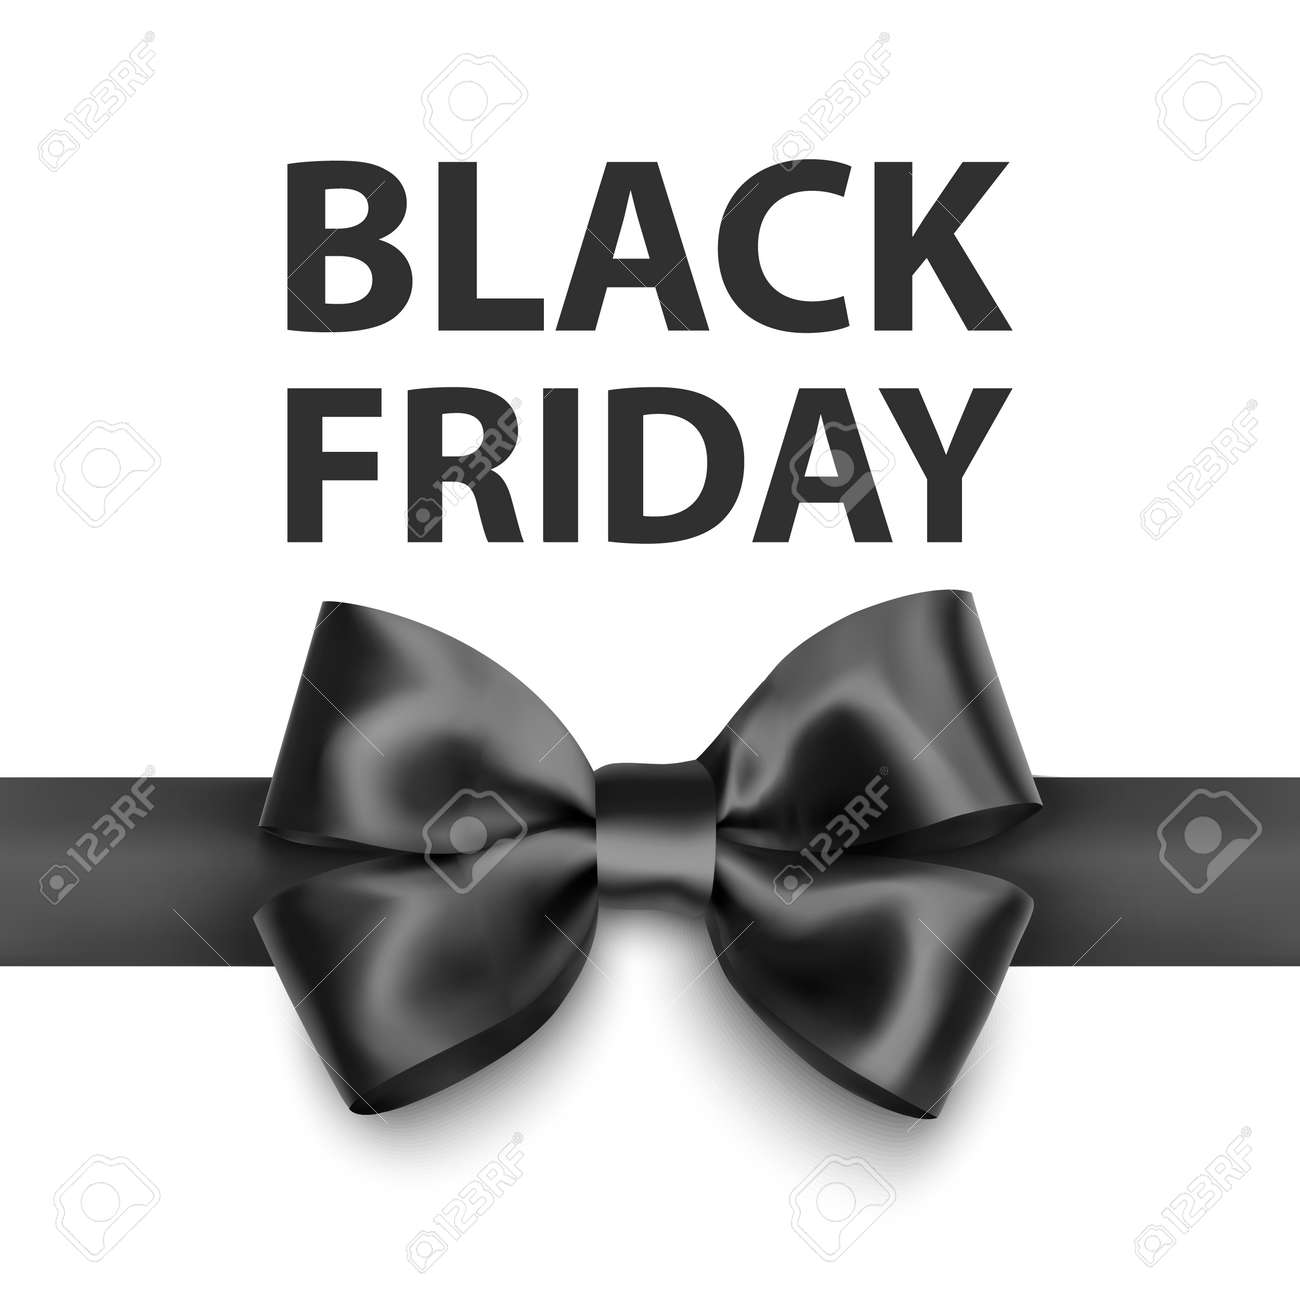 Black friday greeting card with a big black bow, a template for your design, a holiday card, Vector format - 172957349